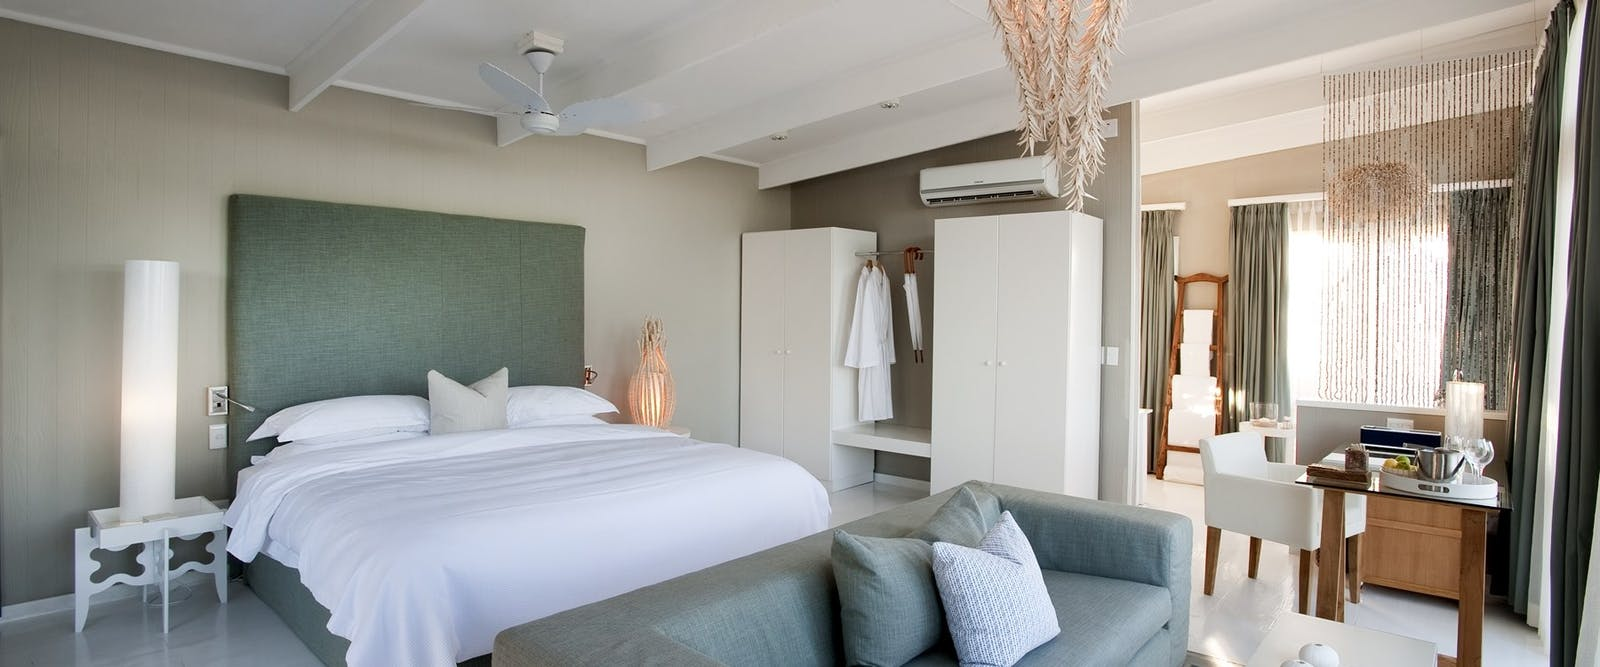 Bedroom at White Pearl Resort